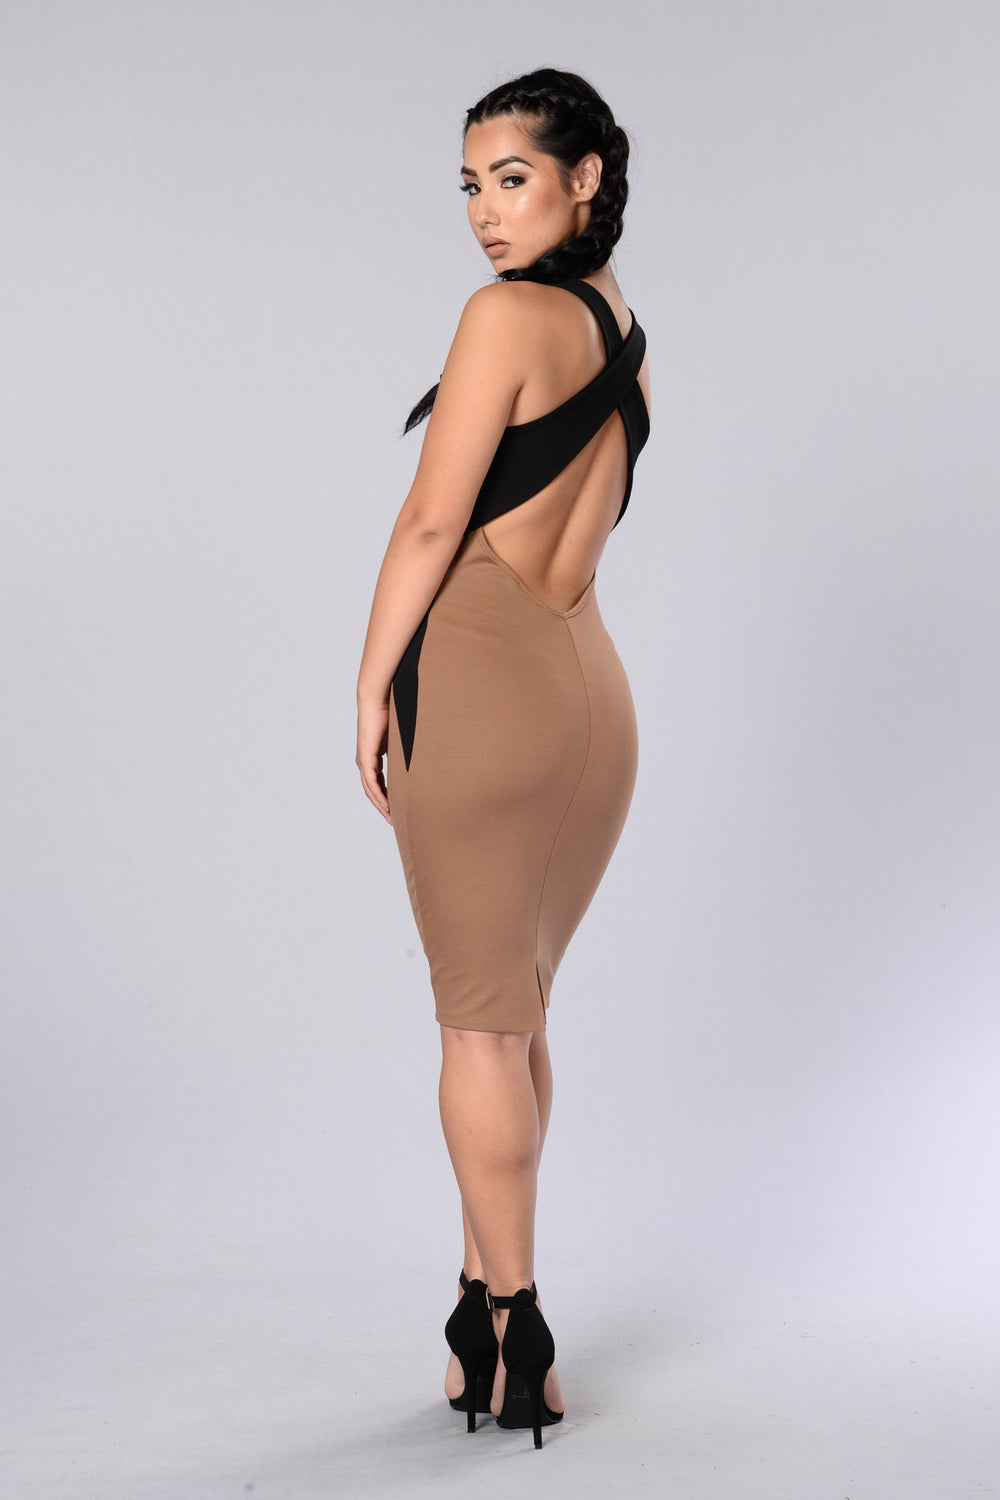 Sahara Desert  Dress - Ivory/Camel